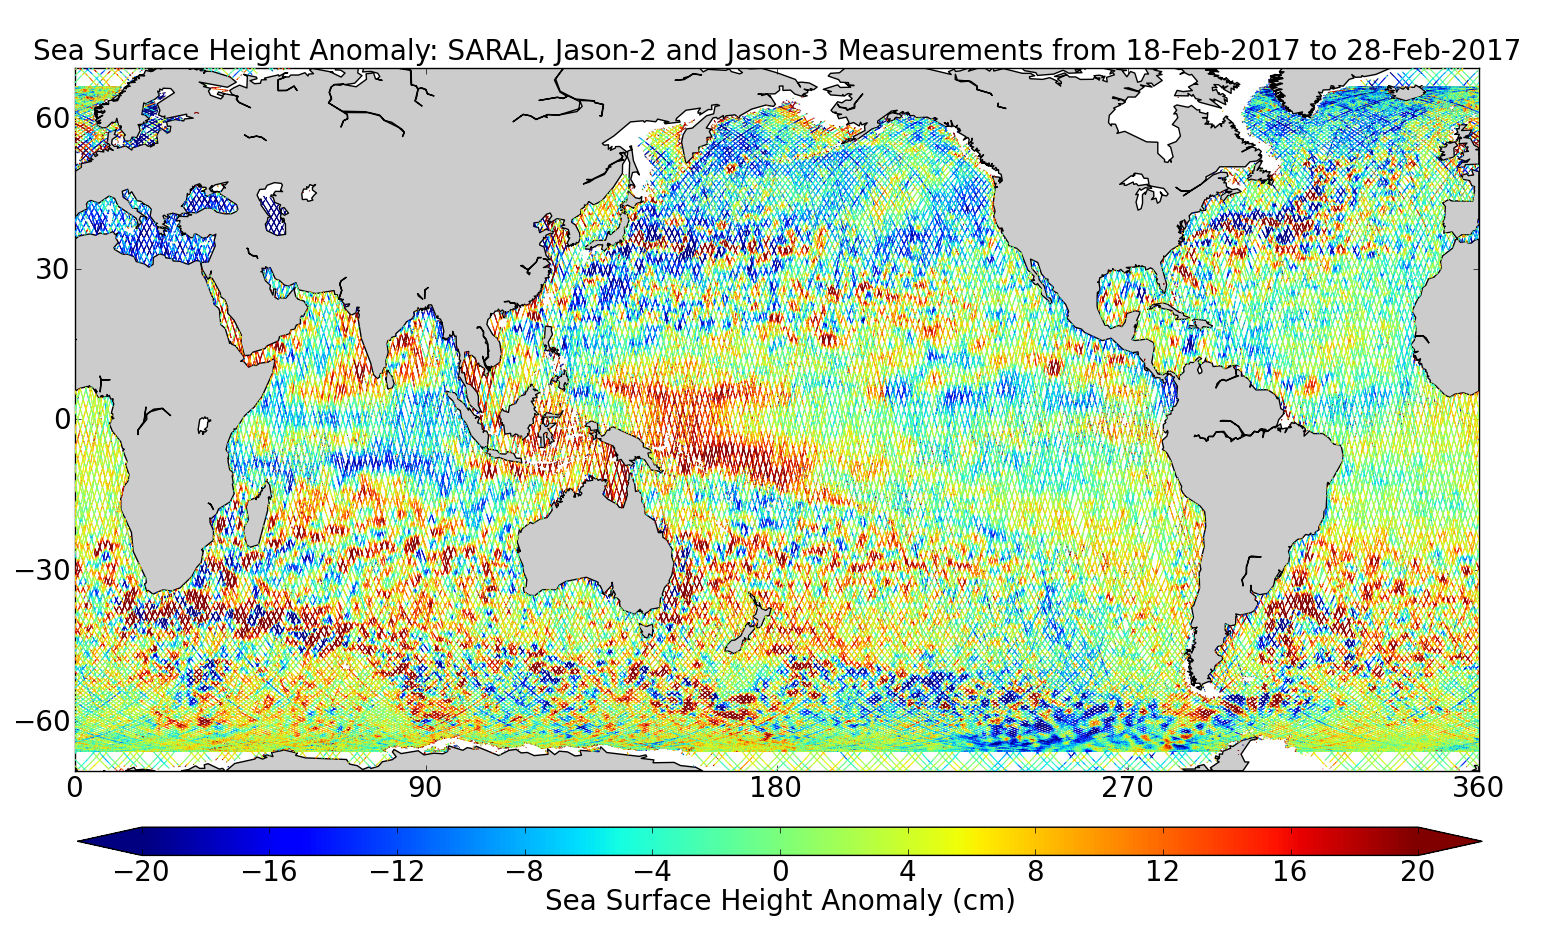 Sea Surface Height Anomaly: SARAL, Jason-2 and Jason-3 Measurements from 18-Feb-2017 to 28-Feb-2017